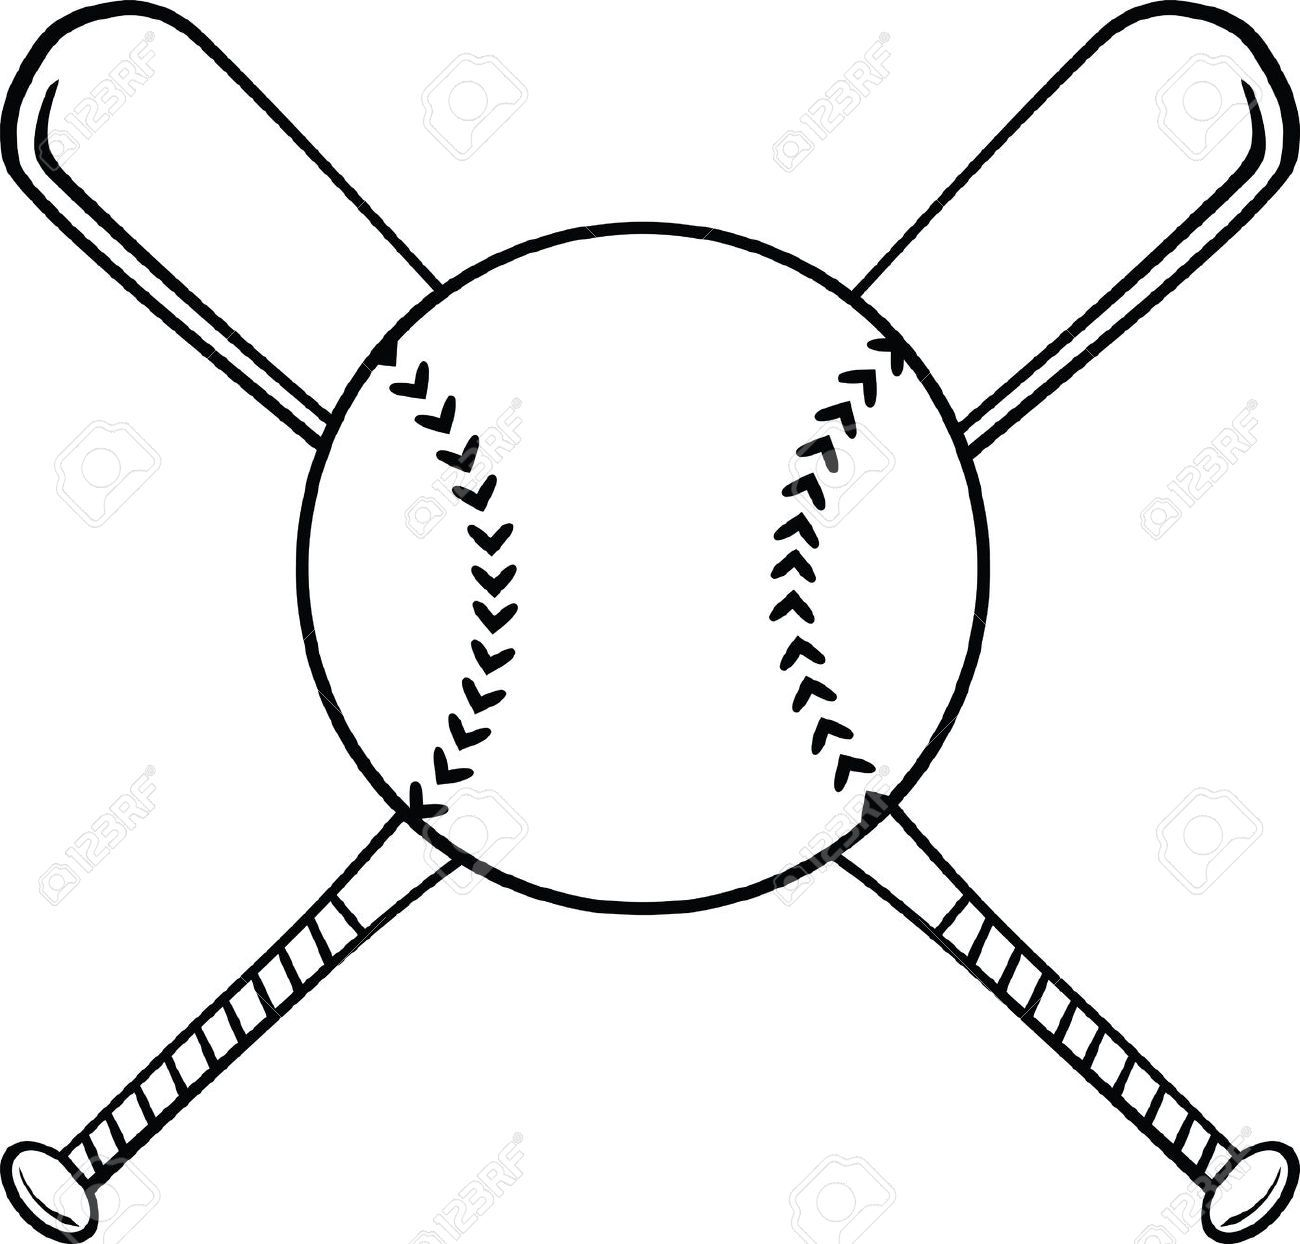 Baseball ball clipart black and white free clip art freeuse Softball ball and bat clipart - ClipartFox | Silhouette | Baseball ... clip art freeuse